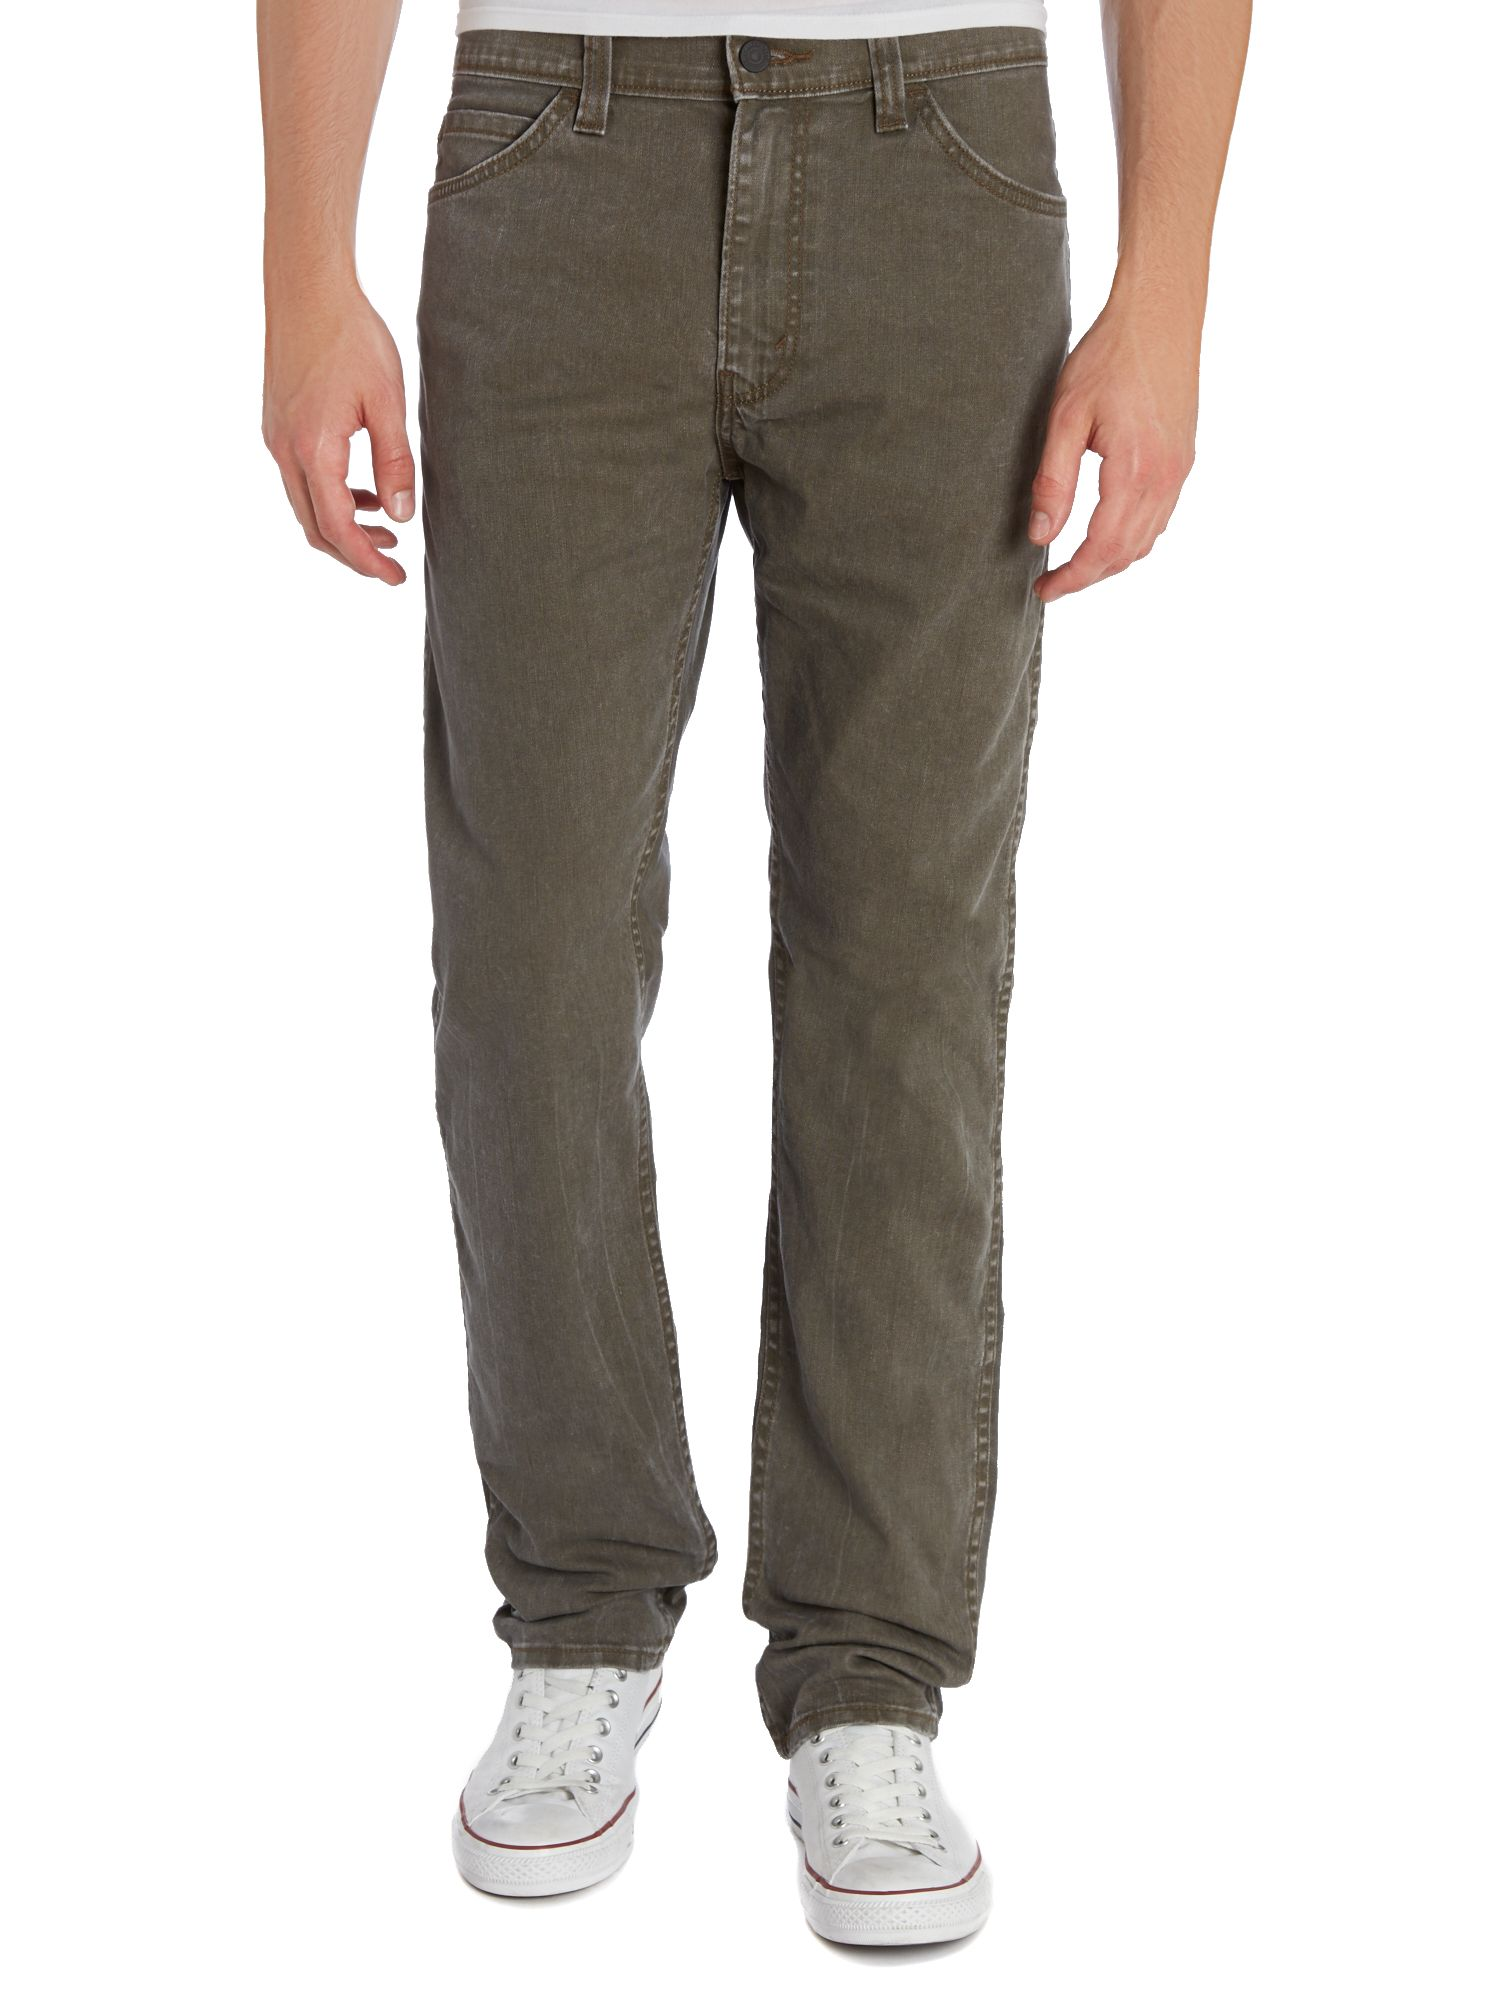 Line 8 508 tapered khaki jean